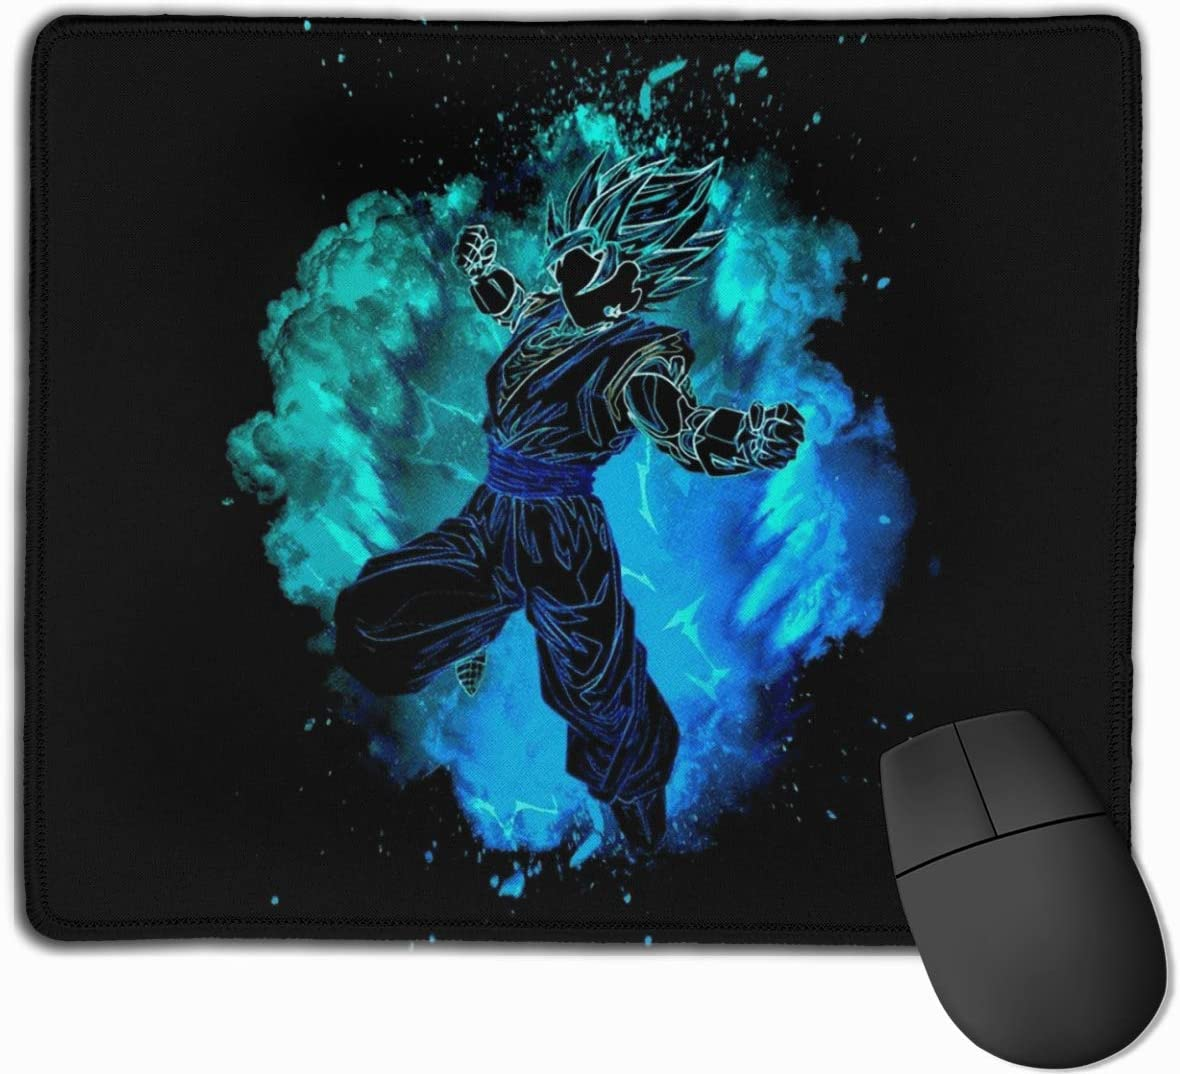 DAIPLY Soul of The Ghost Gengar Poke Computer Laptop Mousepad Stitched Edge Gaming Mouse Pad 11.8x9.8